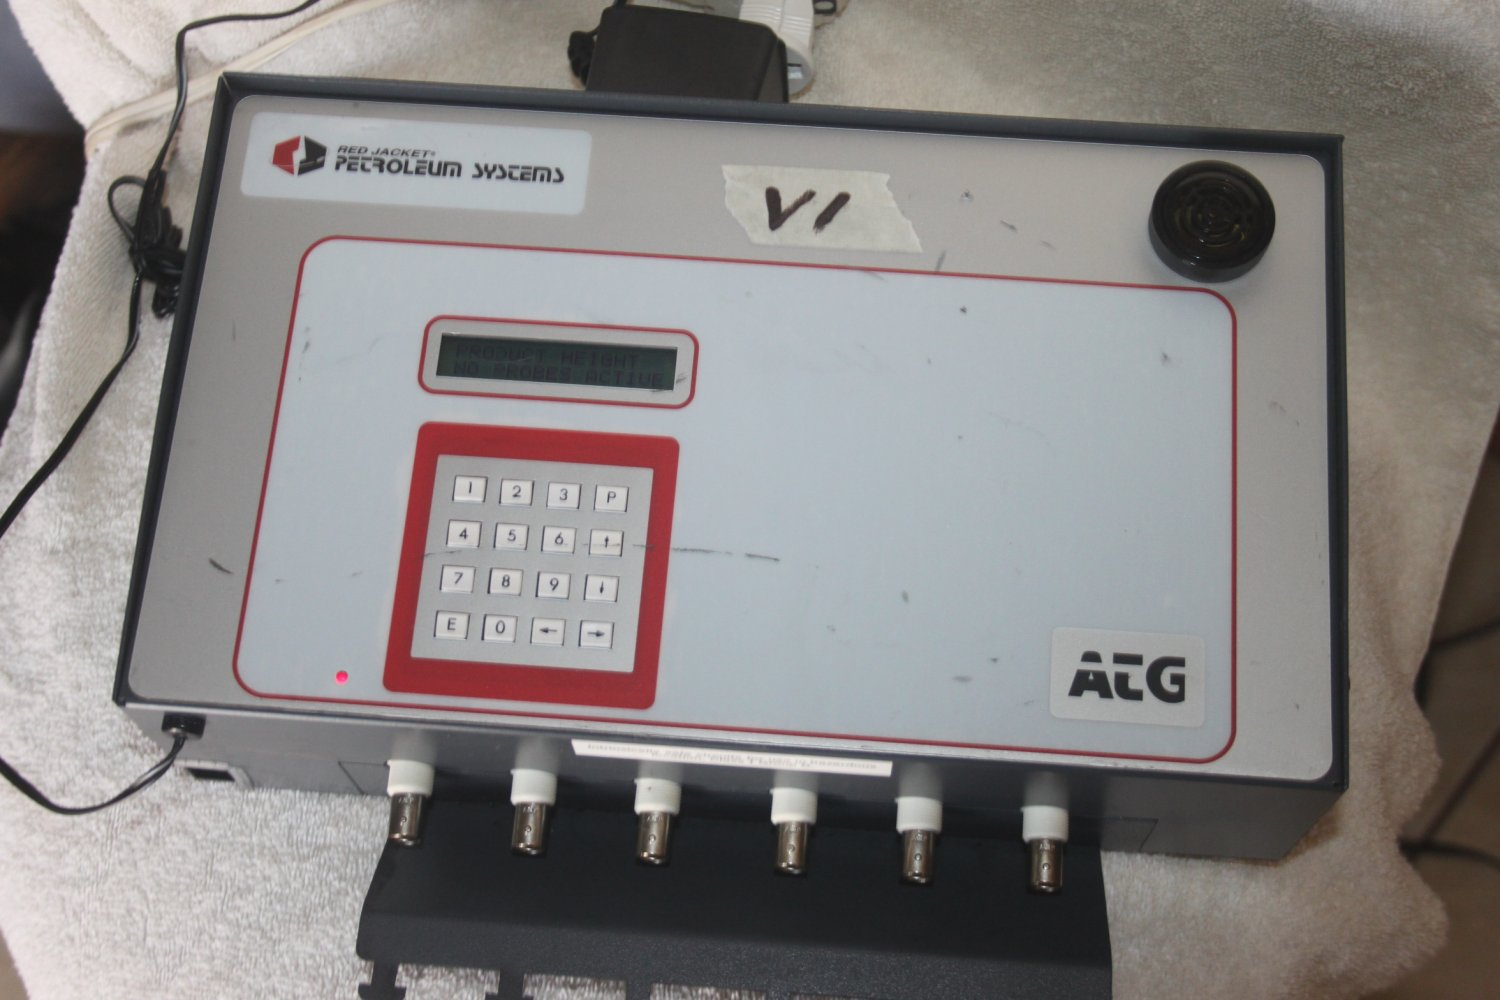 RED JACKET PETROLEUM SYSTEMS ATG MK2 AUTOMATIC PRODUCT LEVEL TANK GUAGE MONITOR